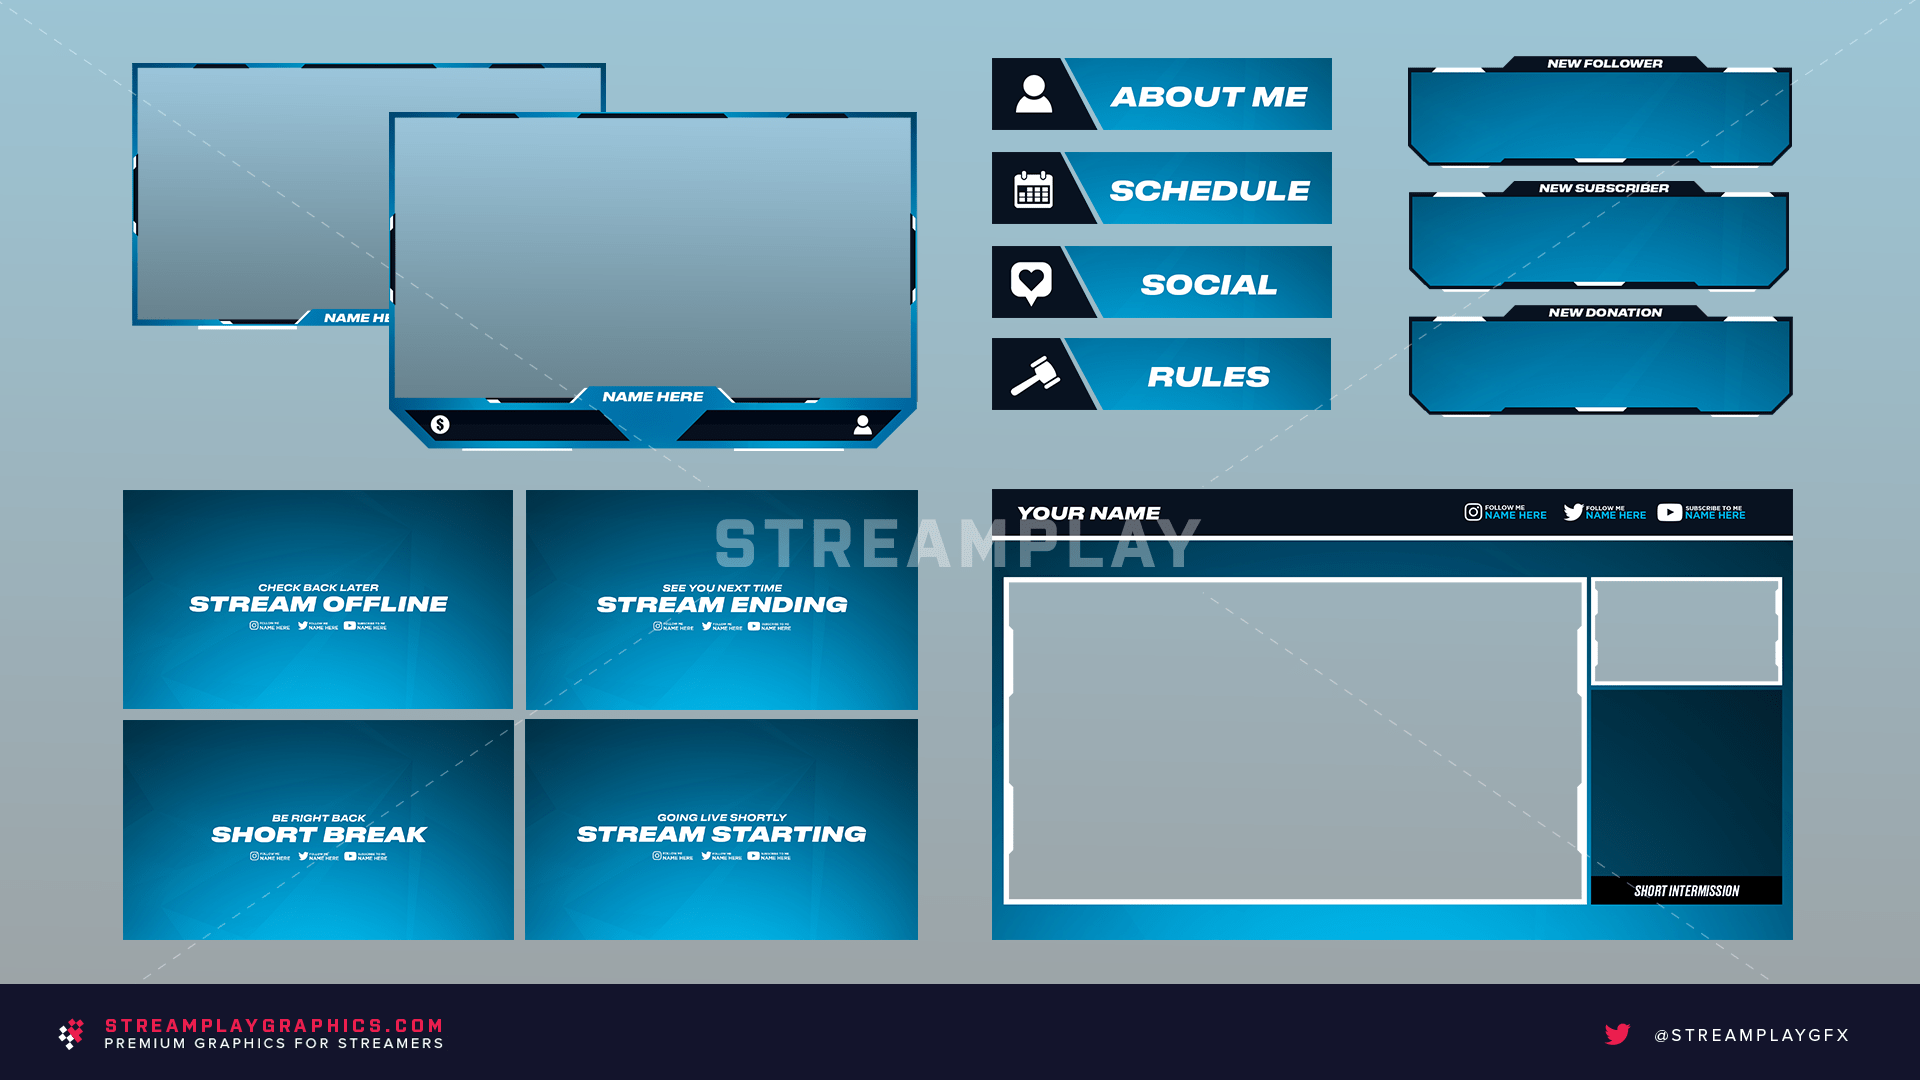 preview of the blue stream overlay graphics